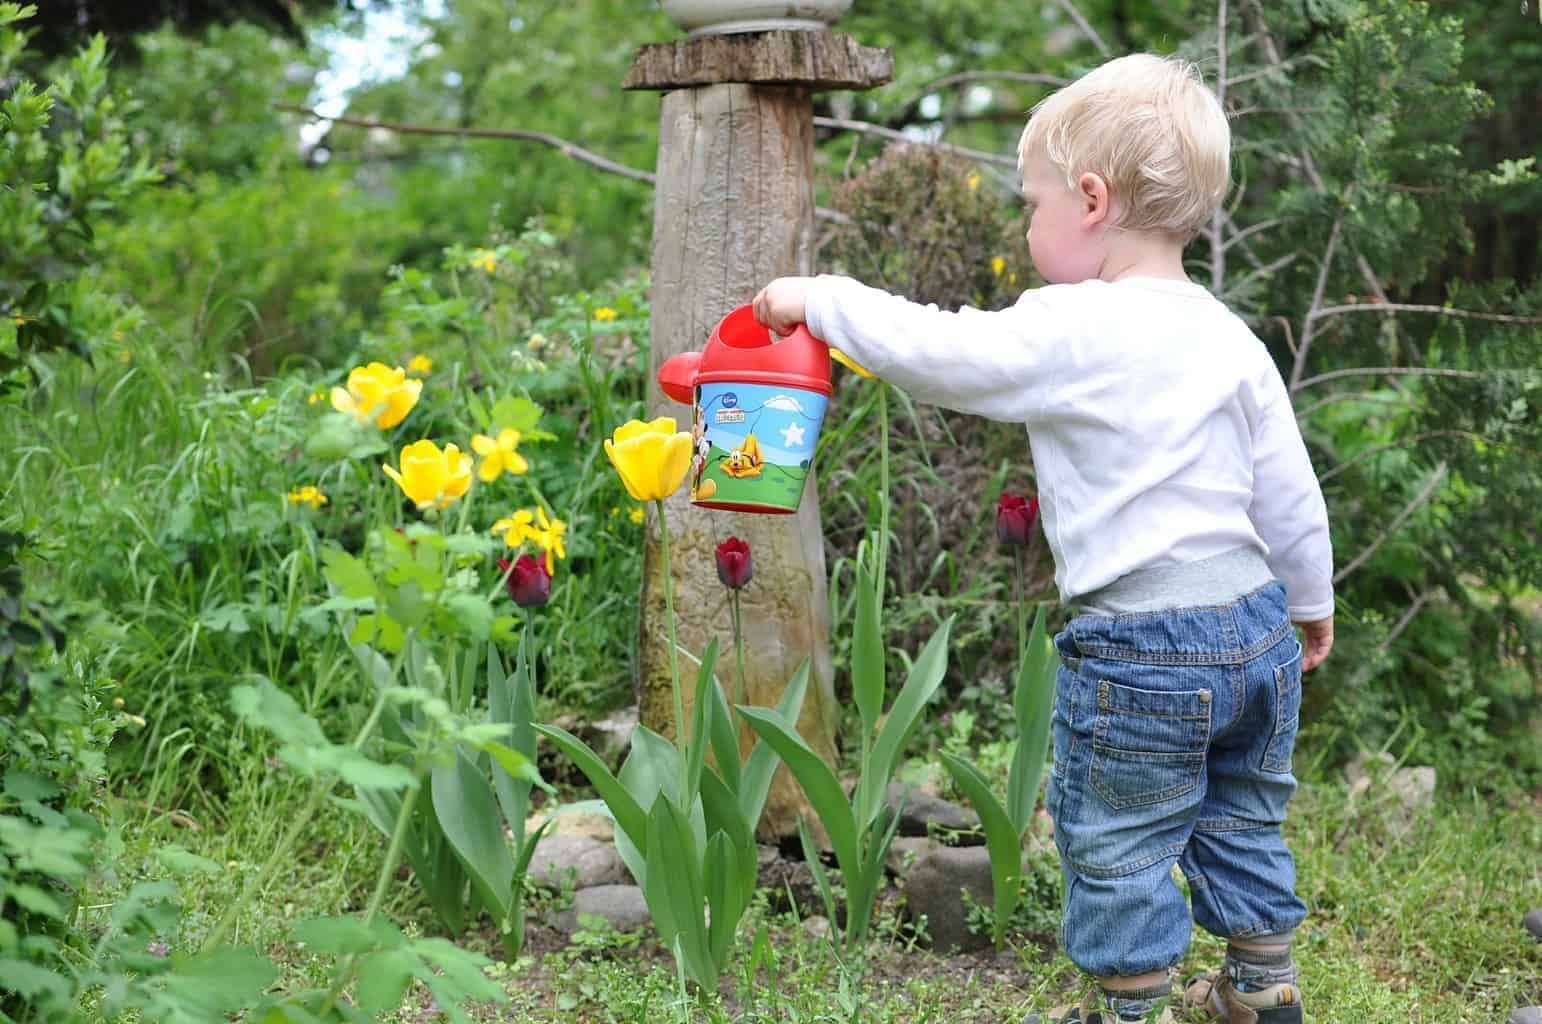 child in a garden watering plants